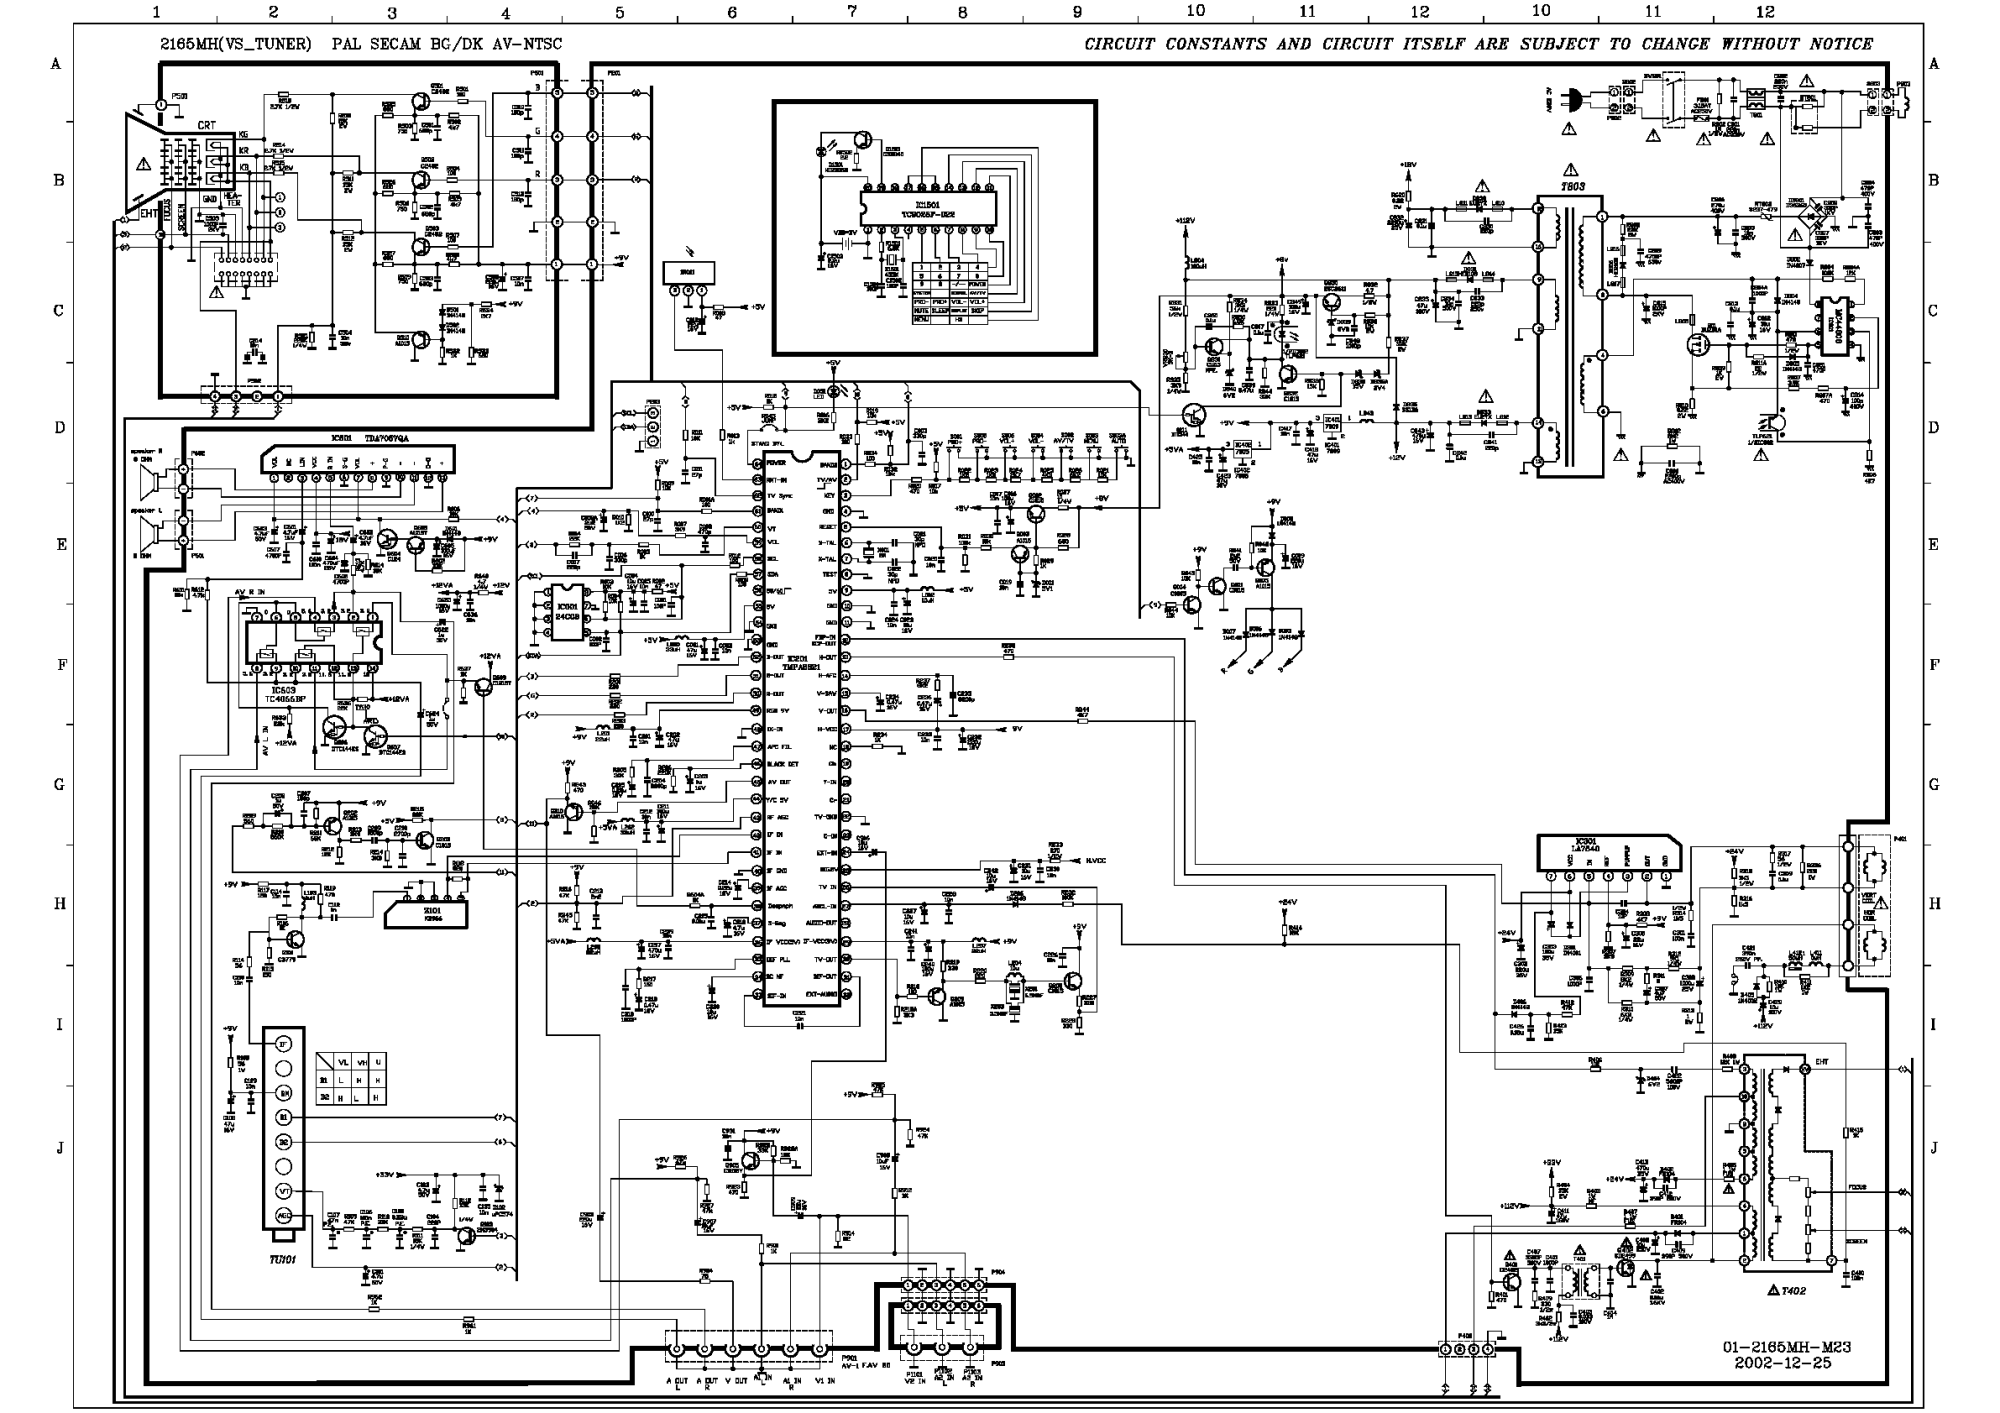 hight resolution of toshiba electric motor wiring diagrams auto electrical wiring diagram 110v schematic wiring diagram free download schematic